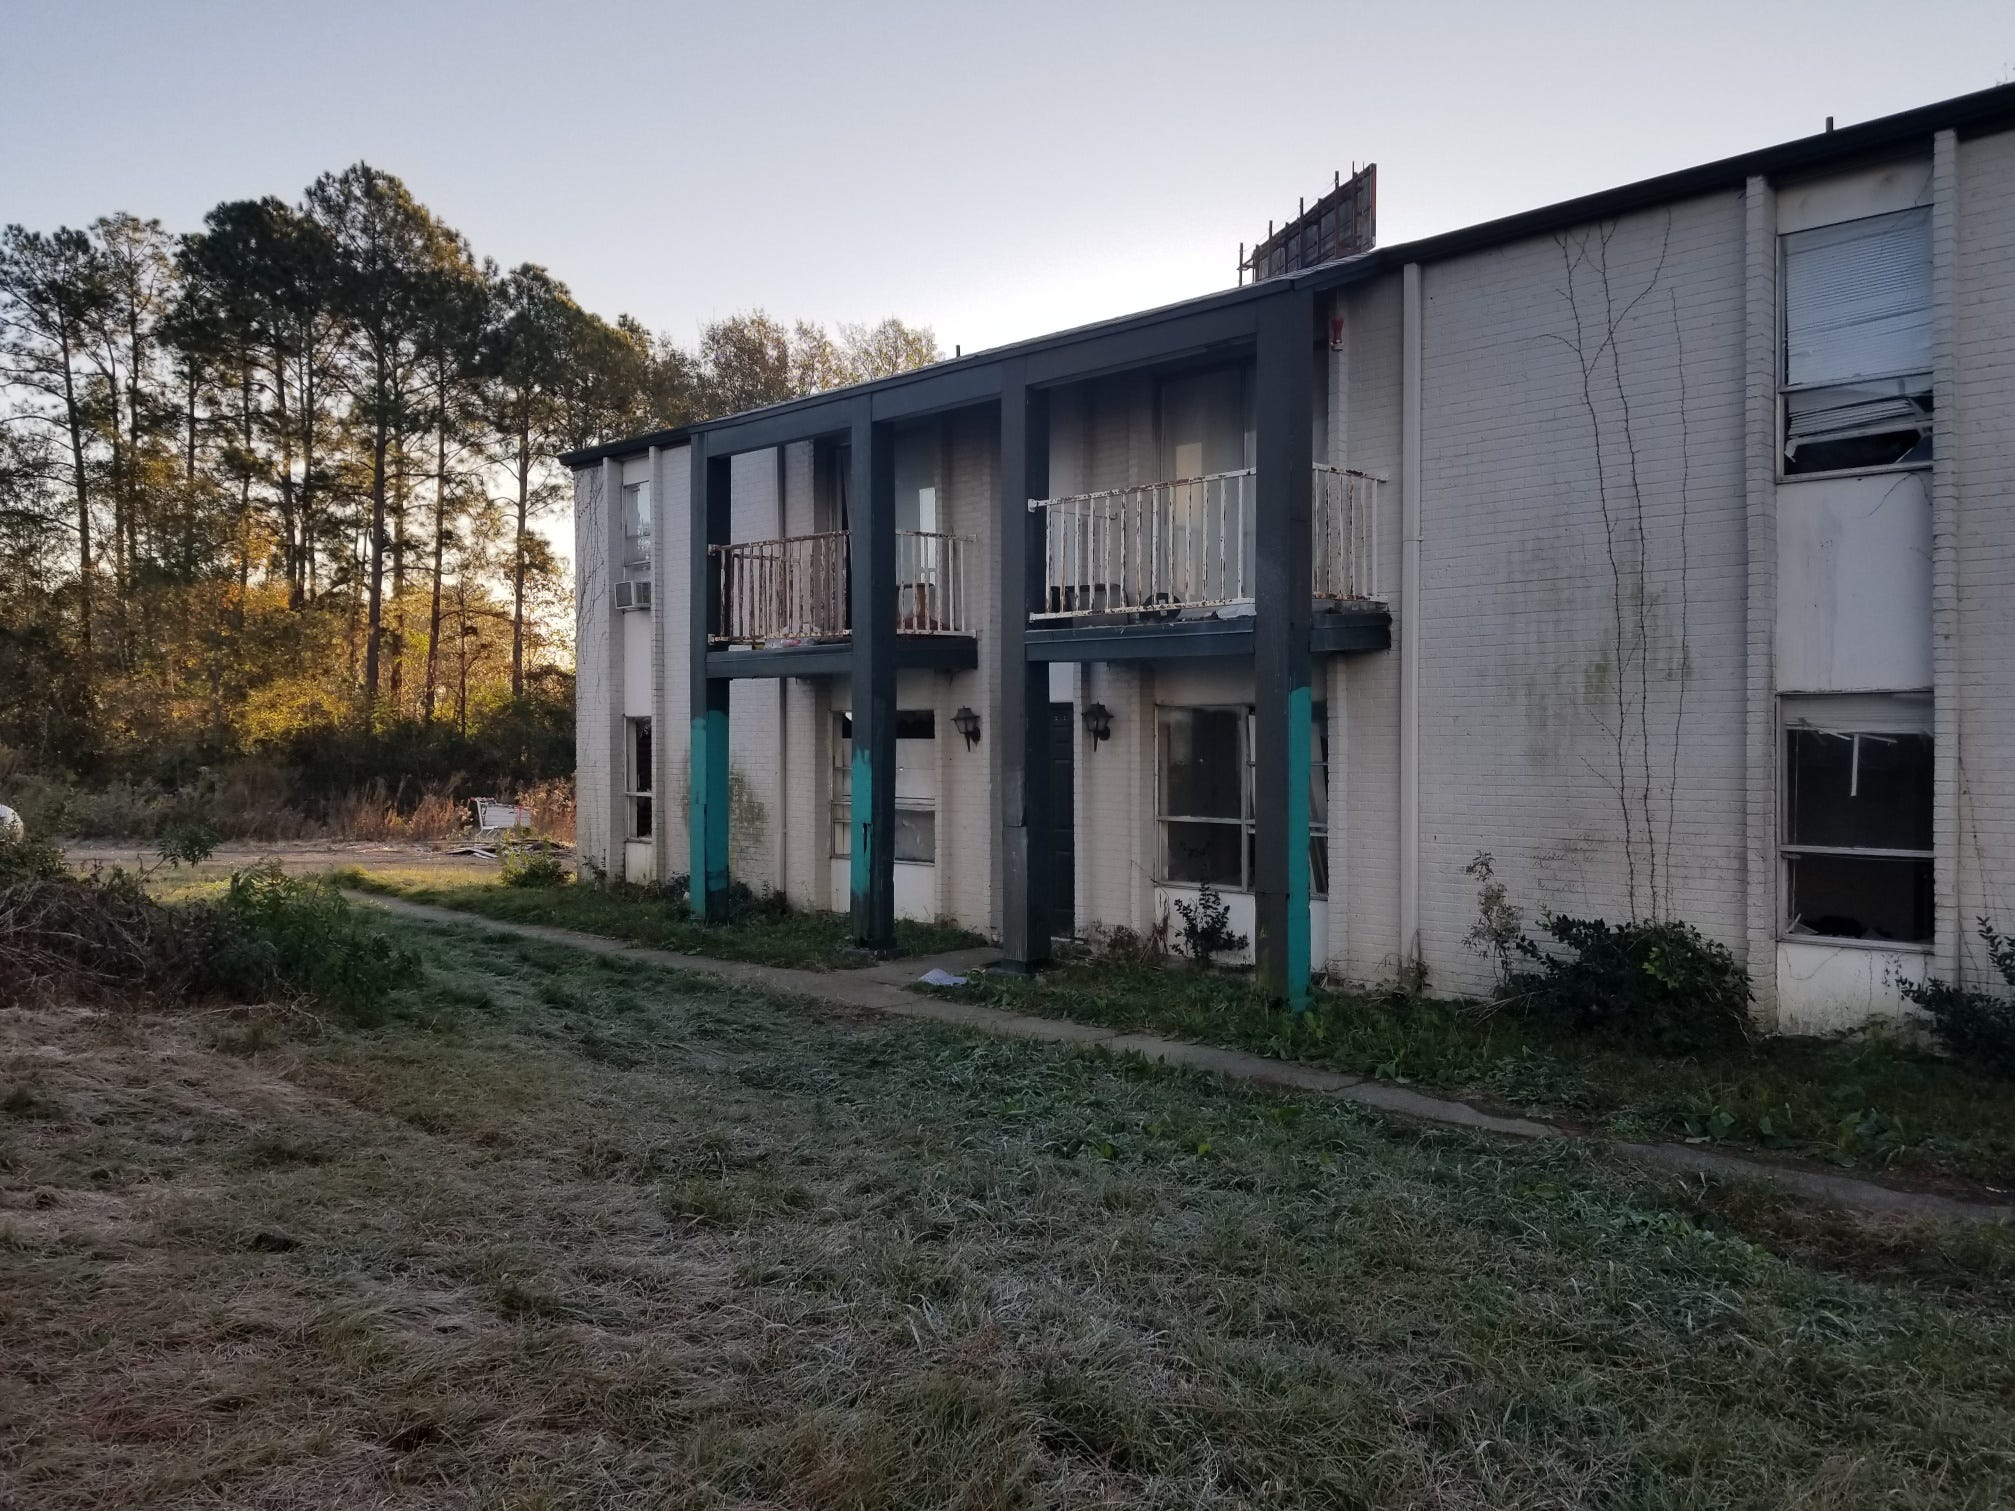 The former Oak Grove Place Apartment Homes, known as Greentree Apartments, a site of blight and disrepair in 2017.